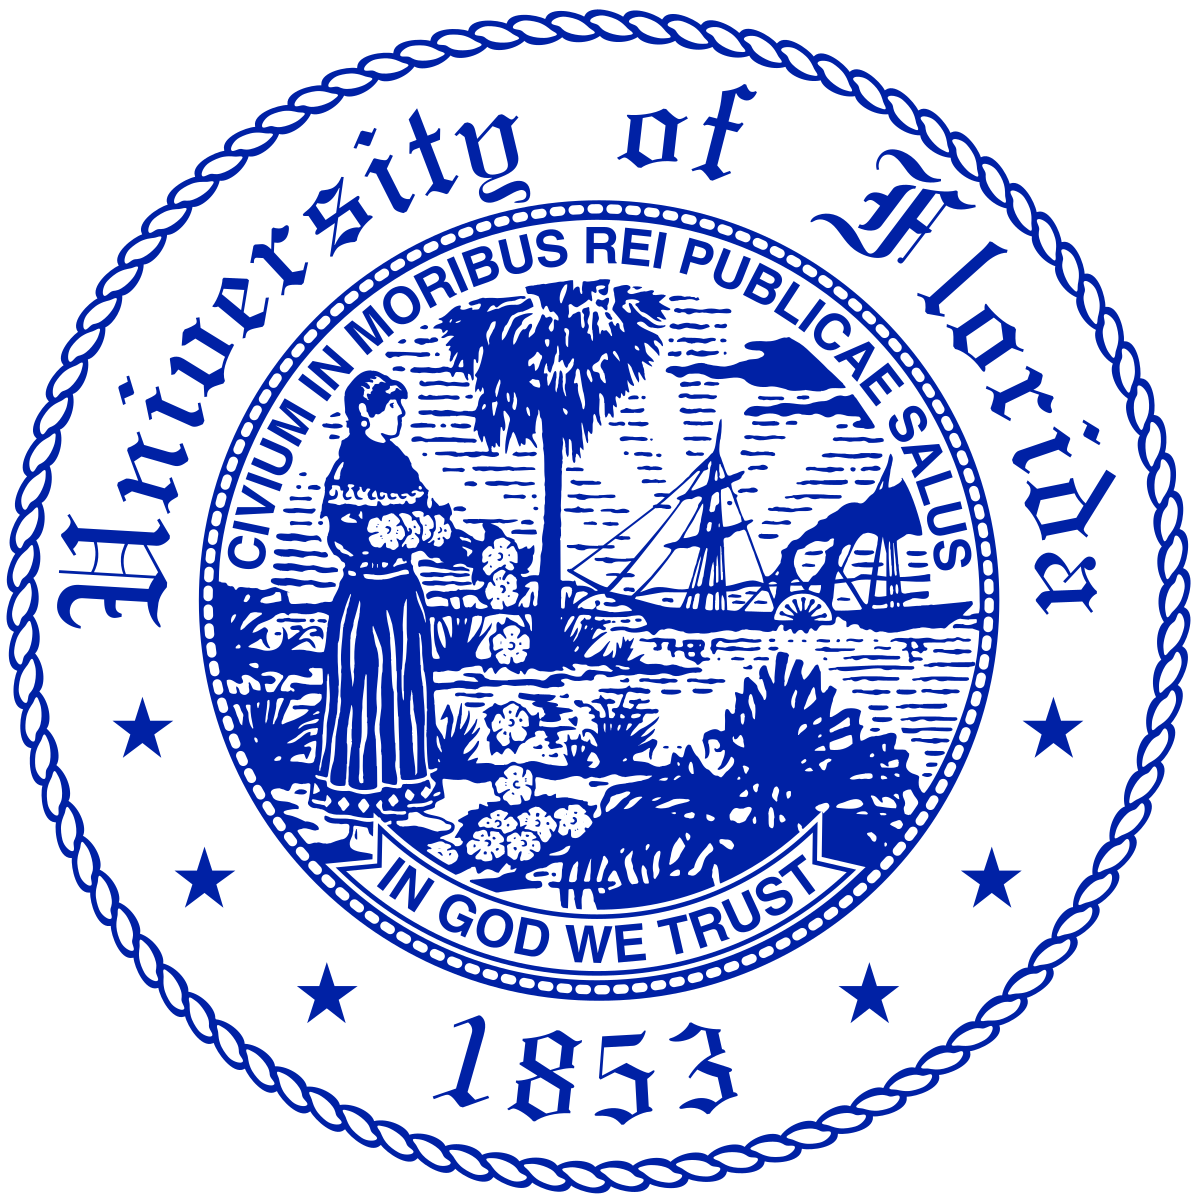 Wikipedia . University of florida logo png graphic transparent download